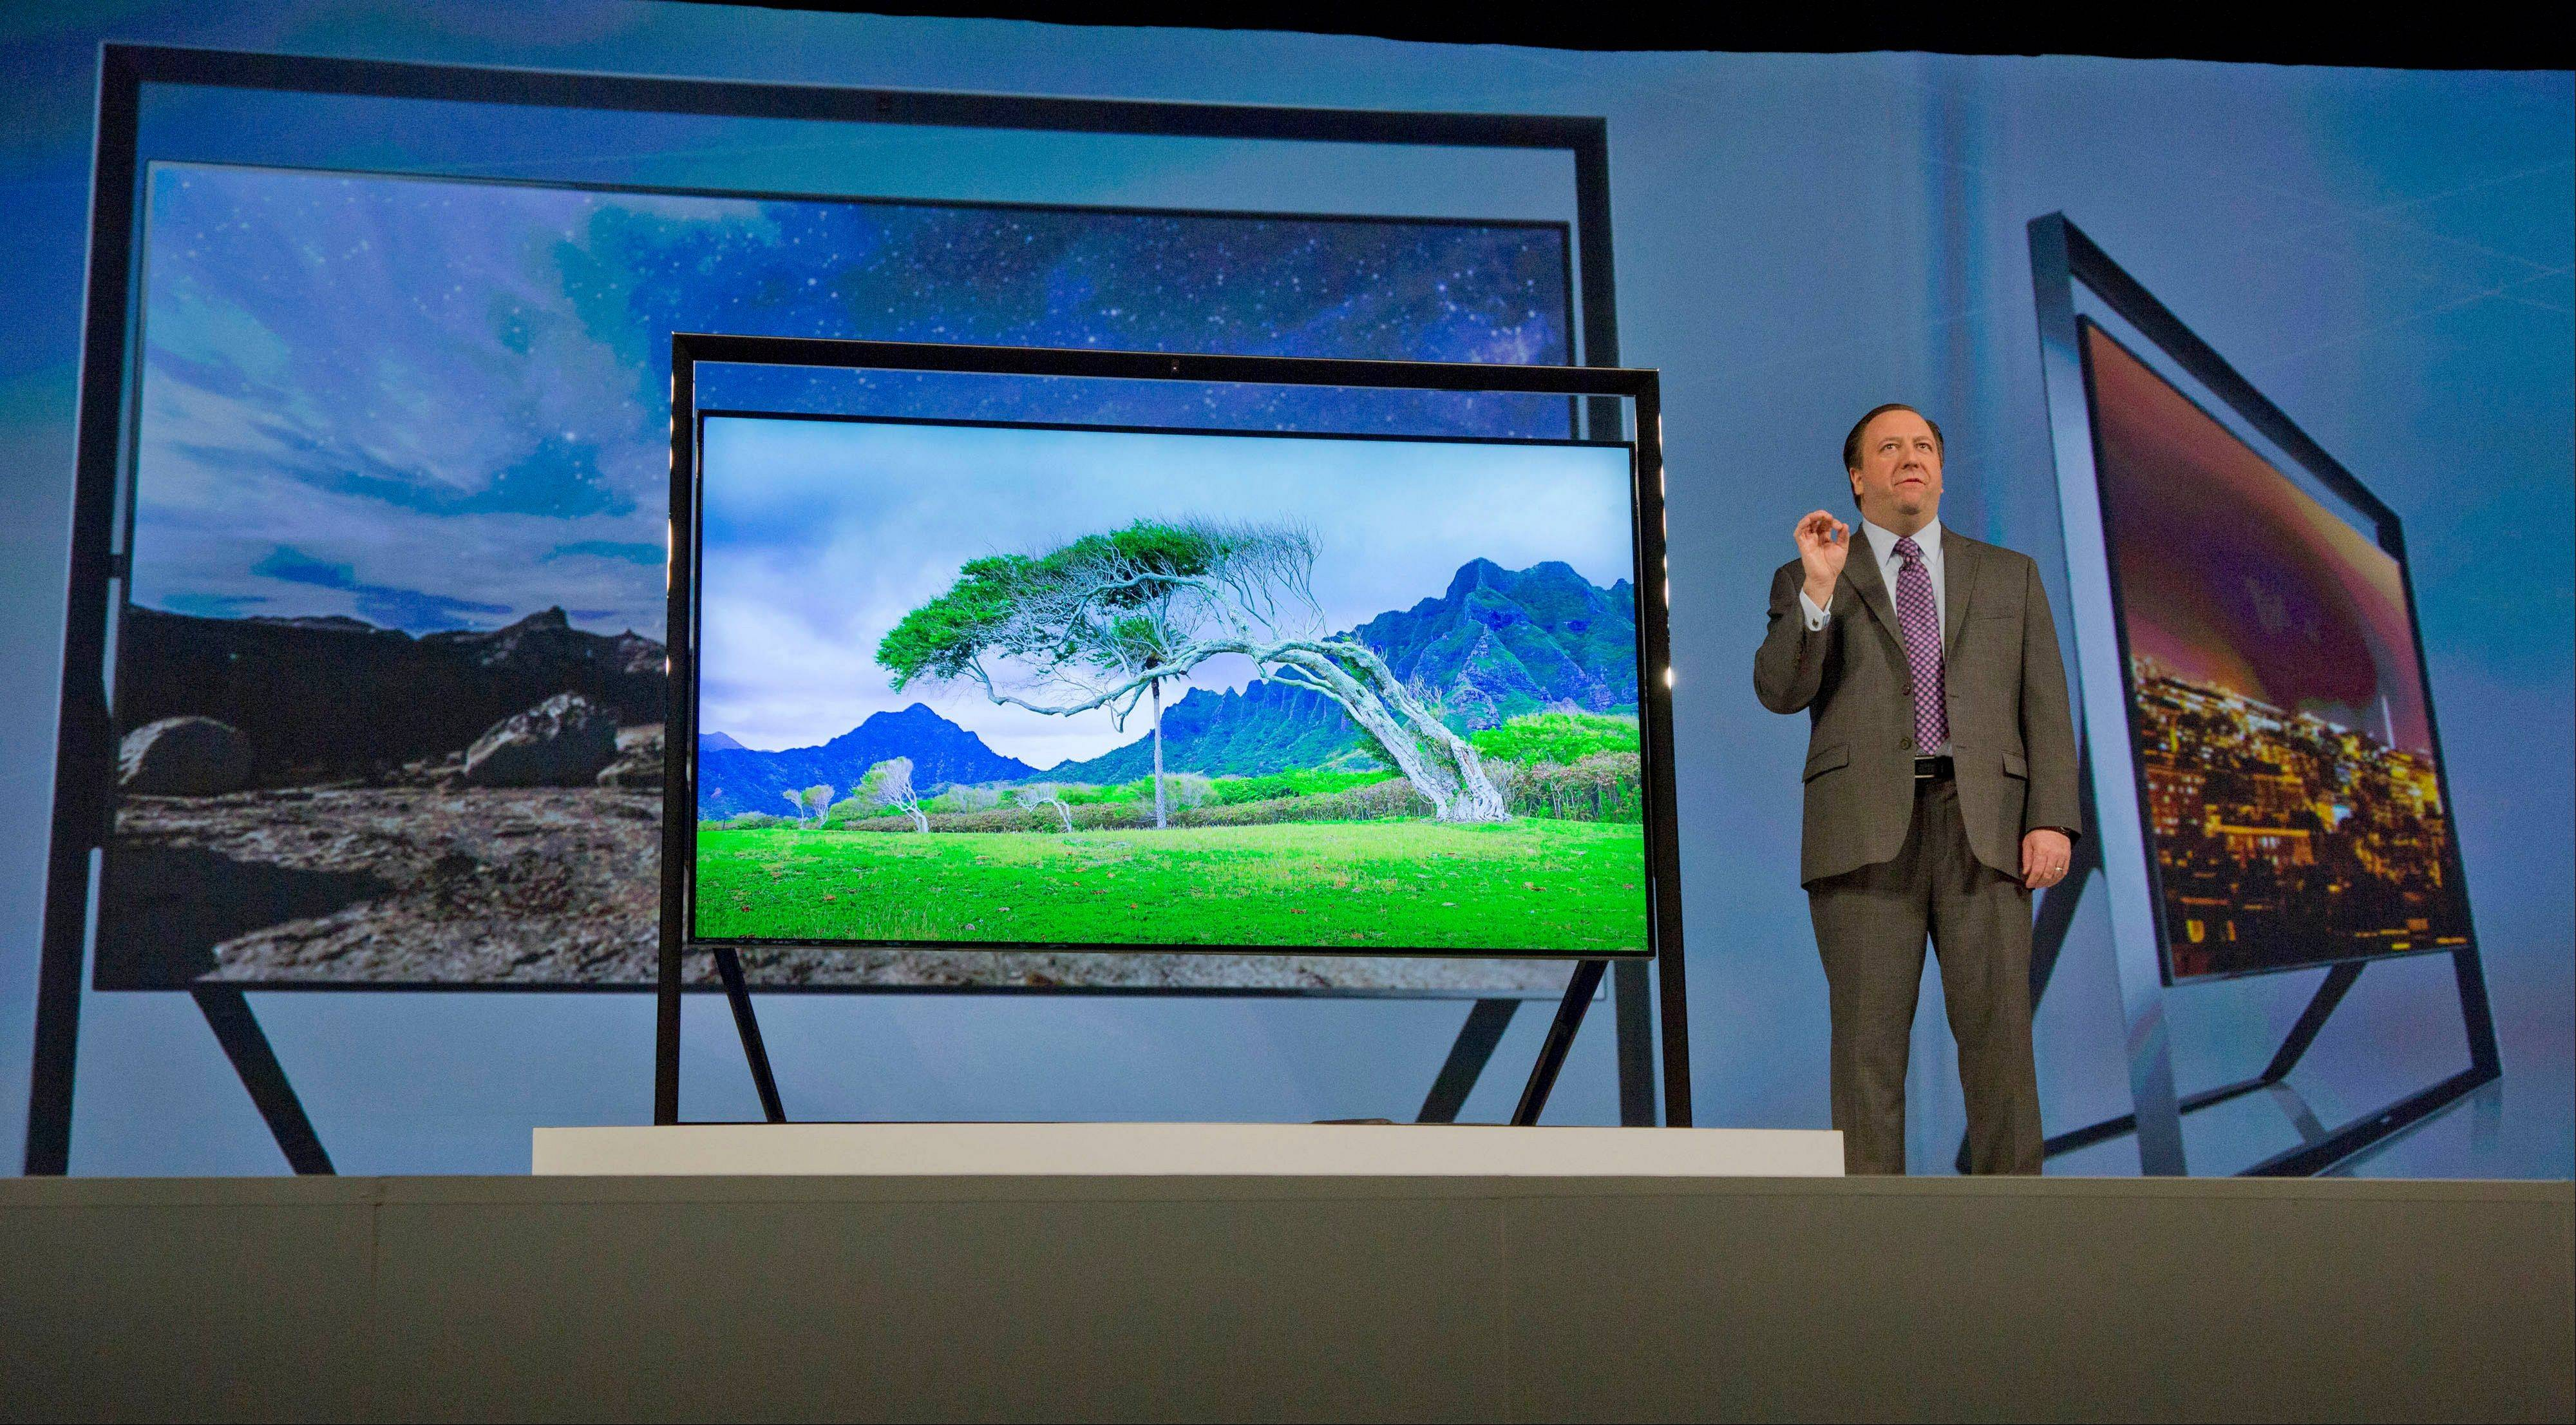 Samsung Electronics executive vice president Joe Stinziano introduces Samsung's Ultra HDTV during a news conference on press day at the Consumer Electronics Show.